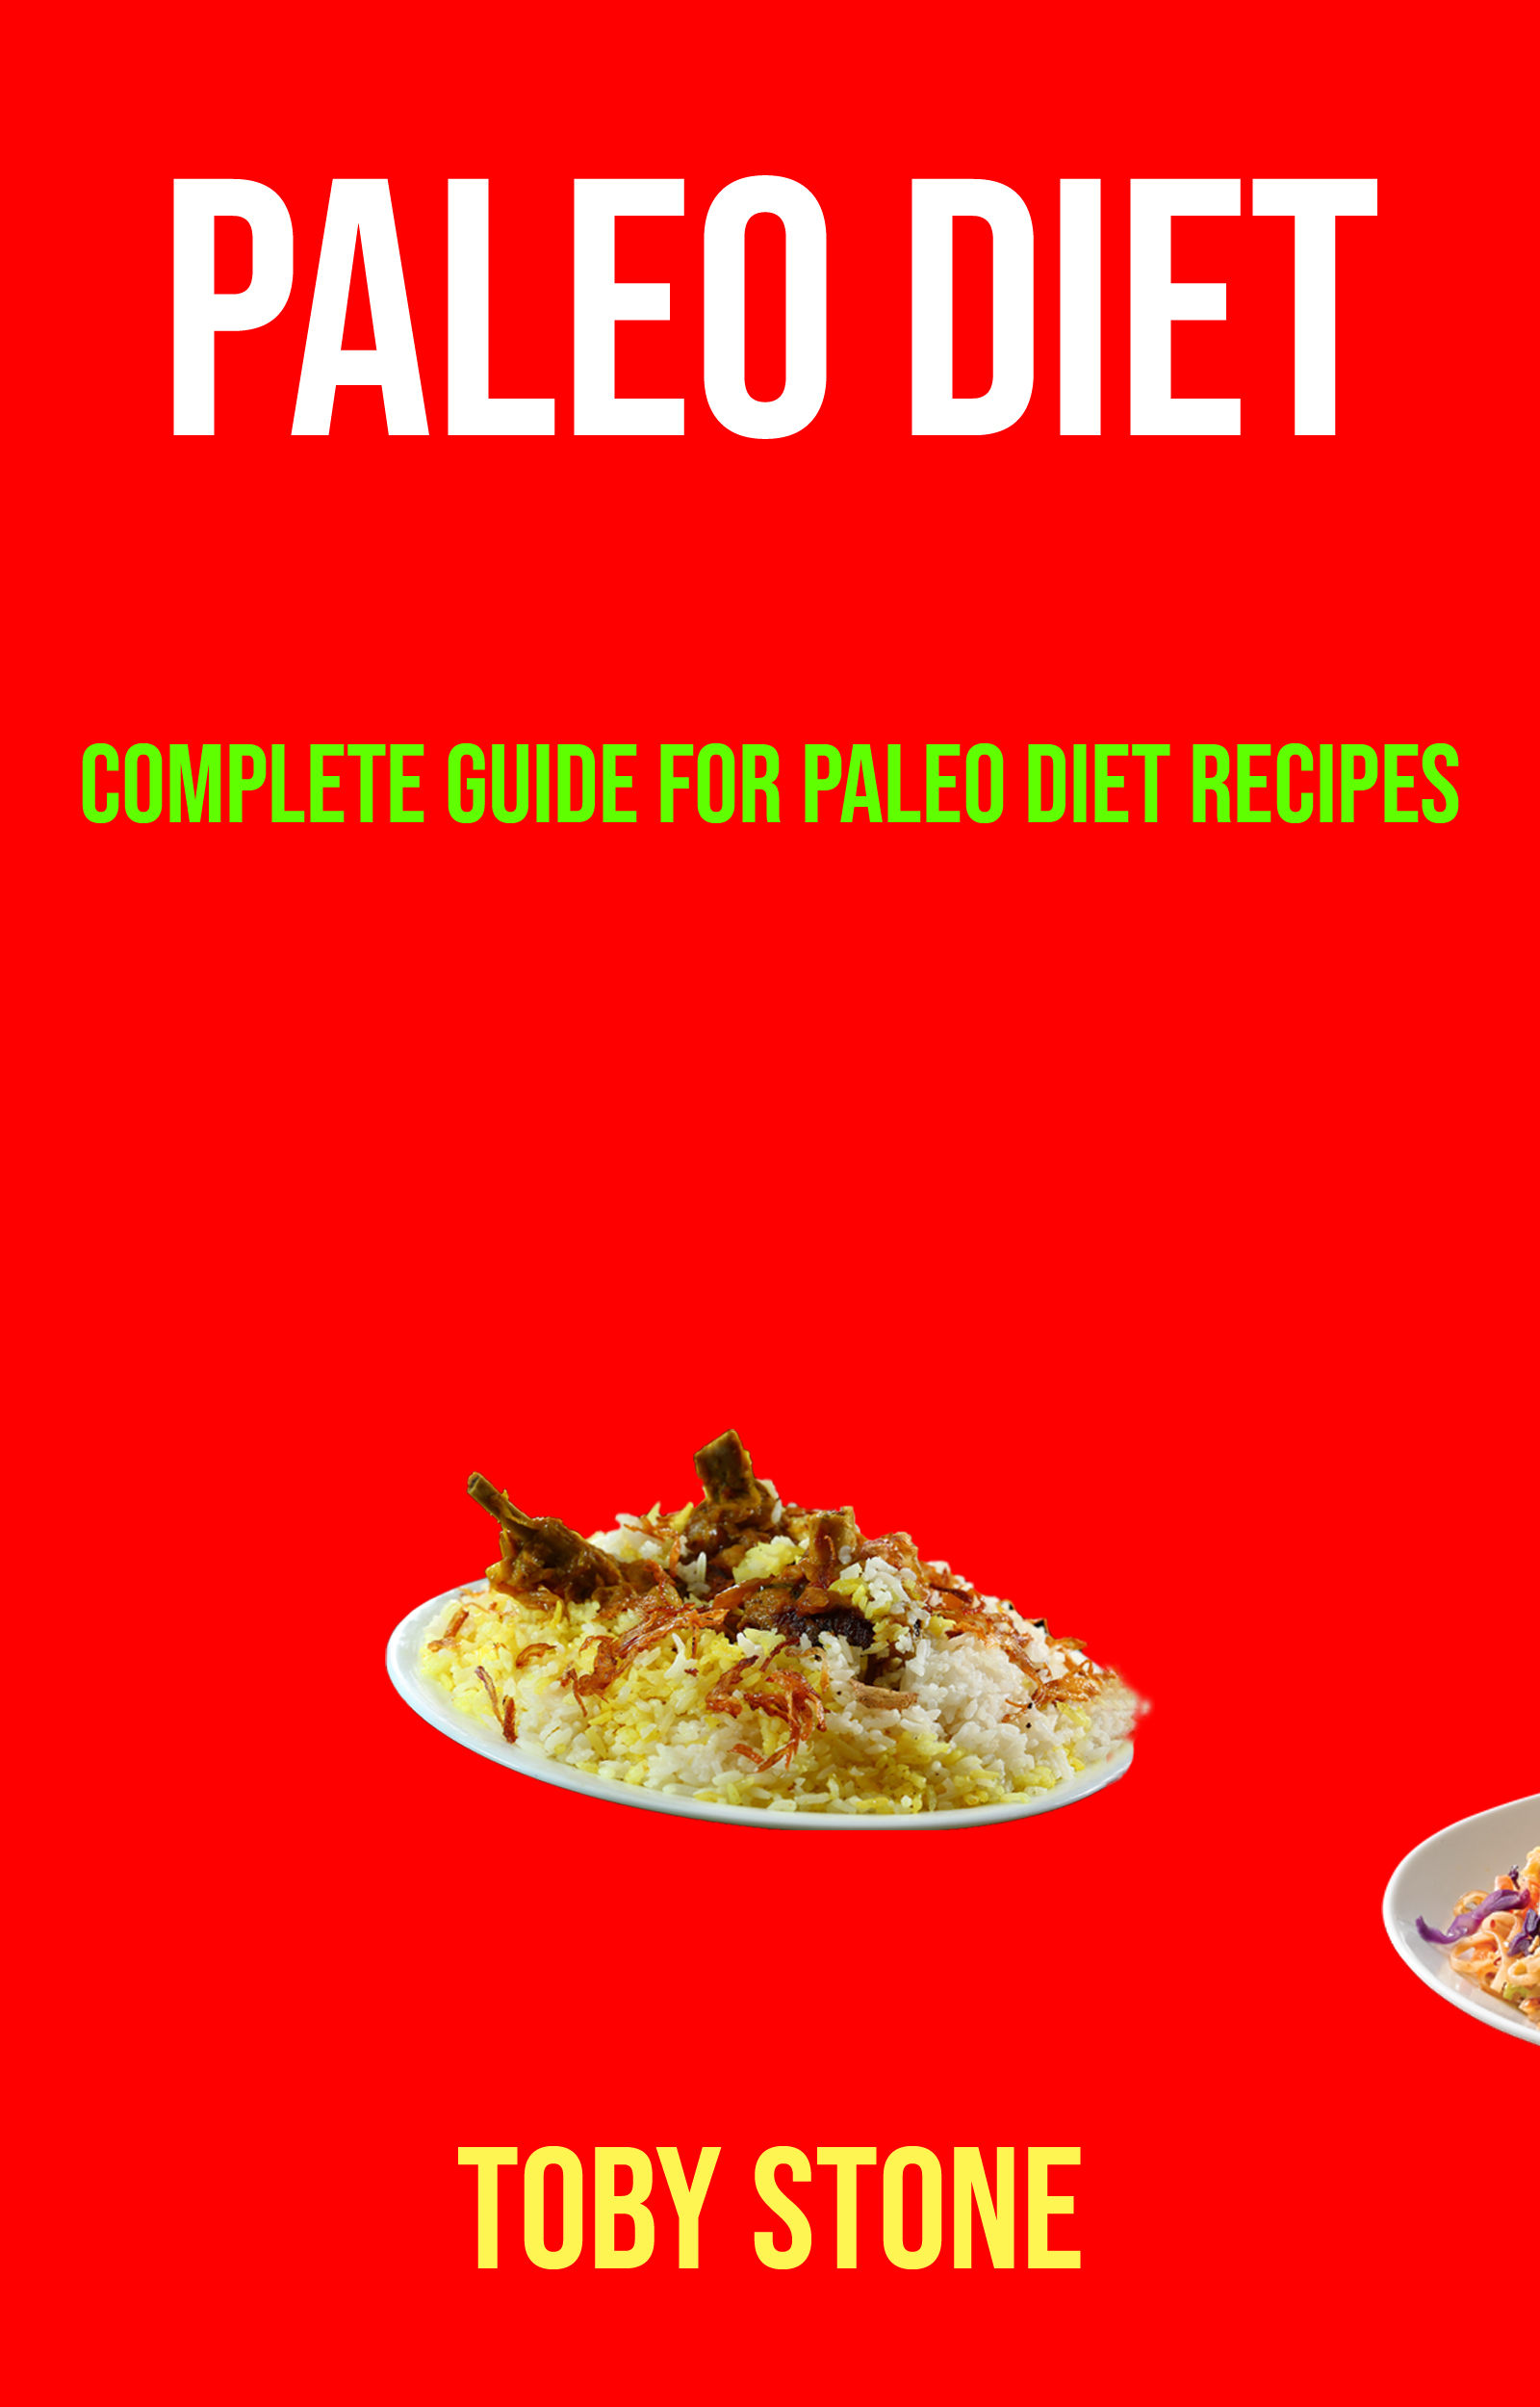 Paleo diet: complete guide for paleo diet recipes